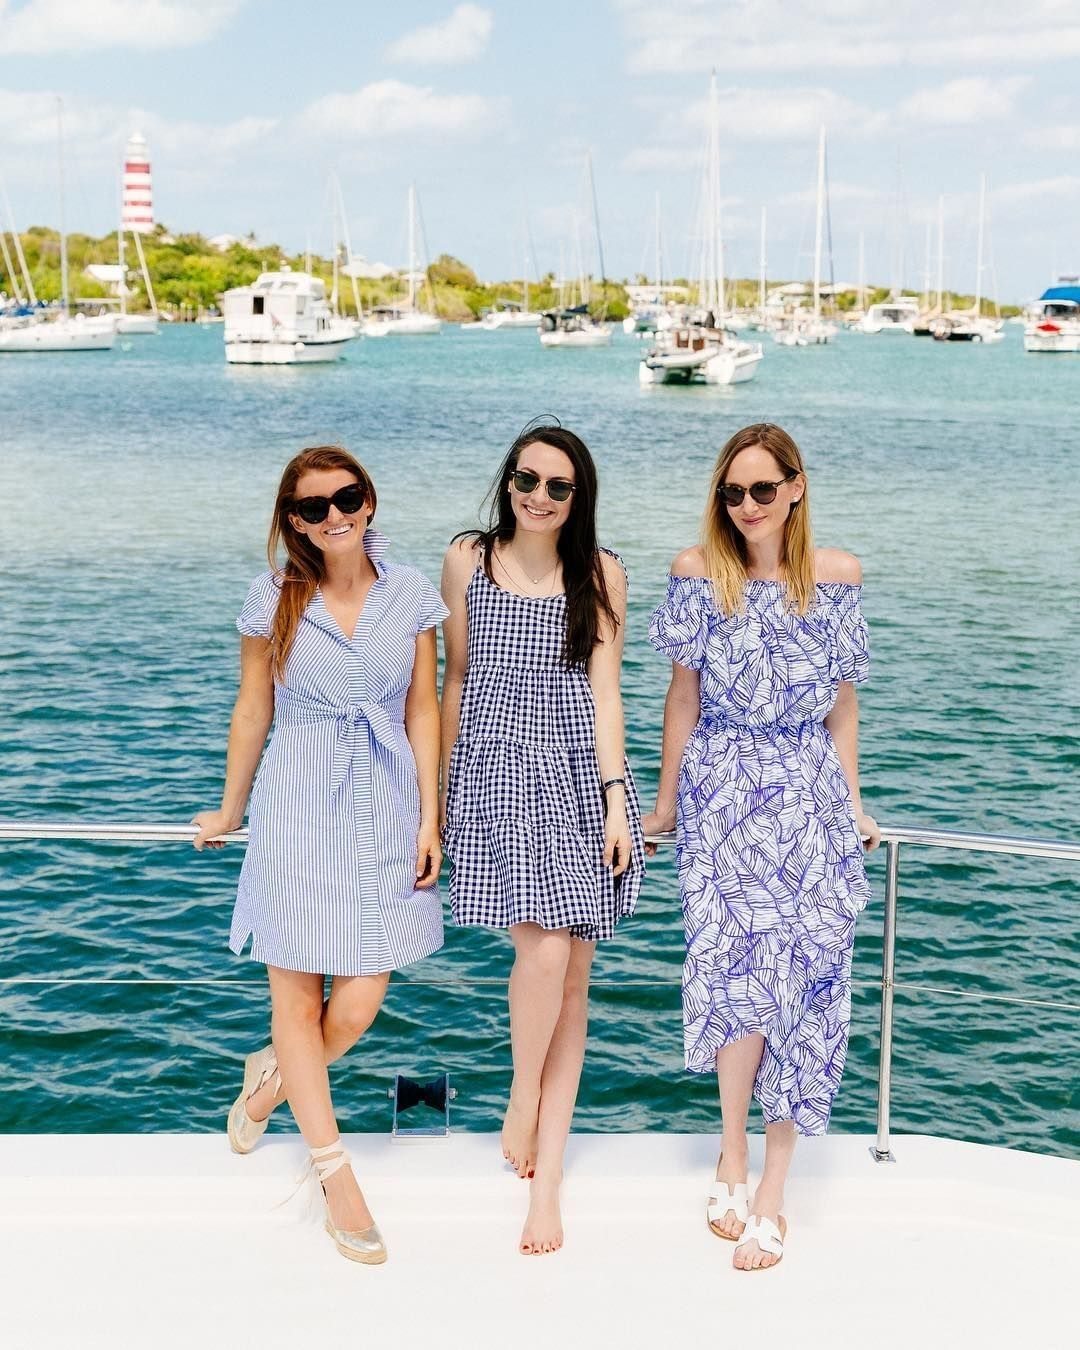 Take a tip in bestie boating chic care of @carly and crew's blue hued frocks